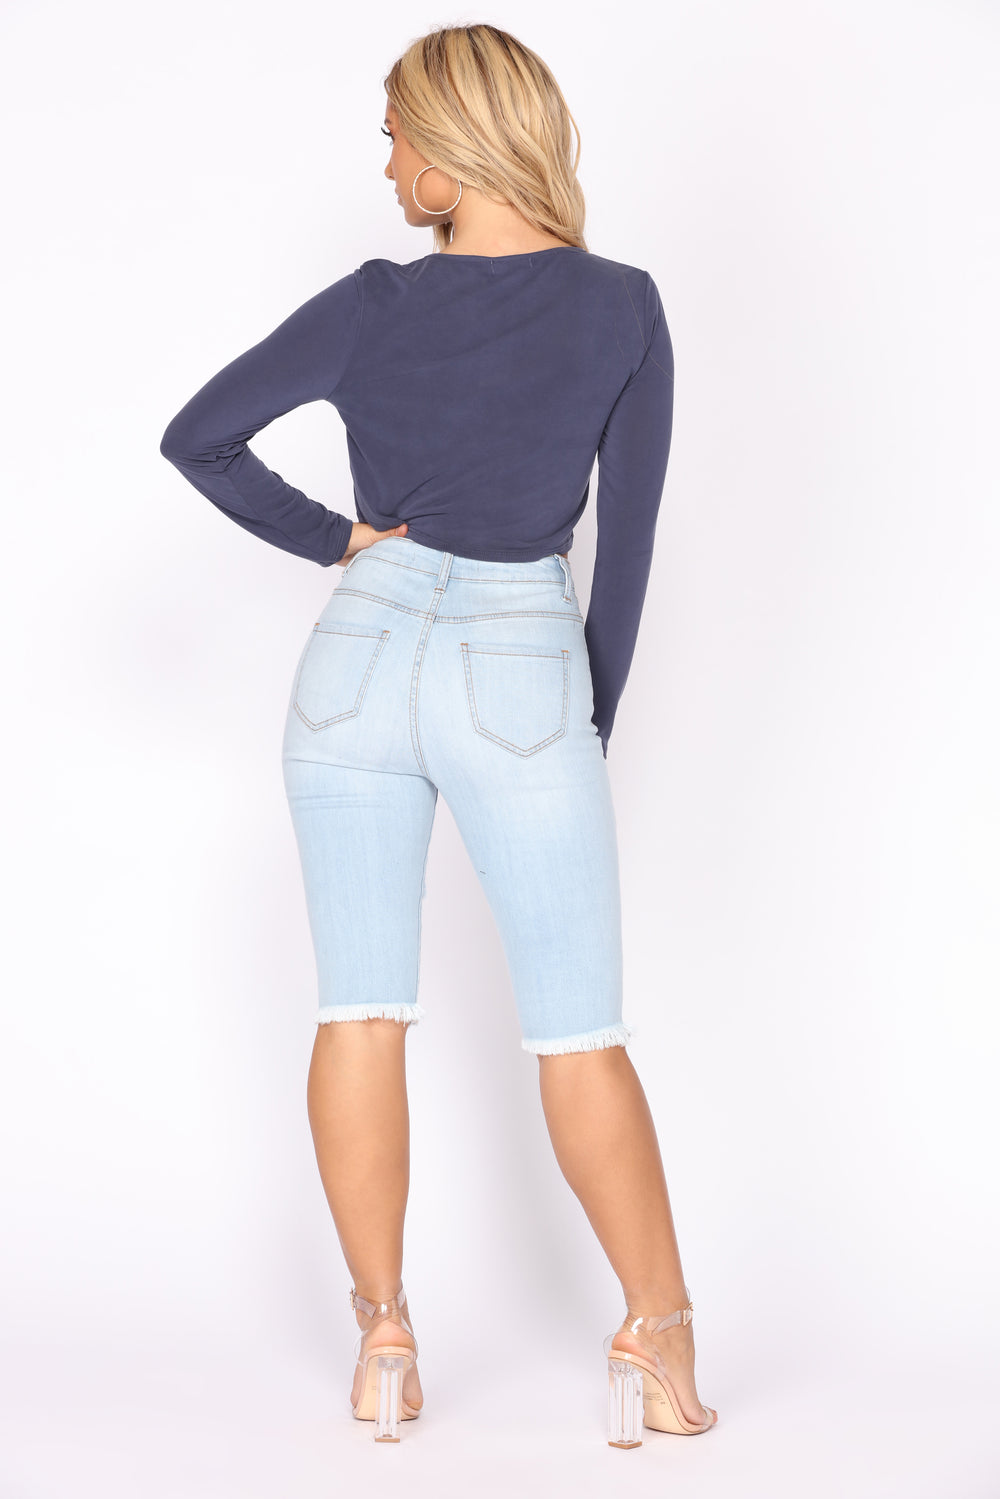 Leave It To Me Bermuda Shorts - Light Blue Wash